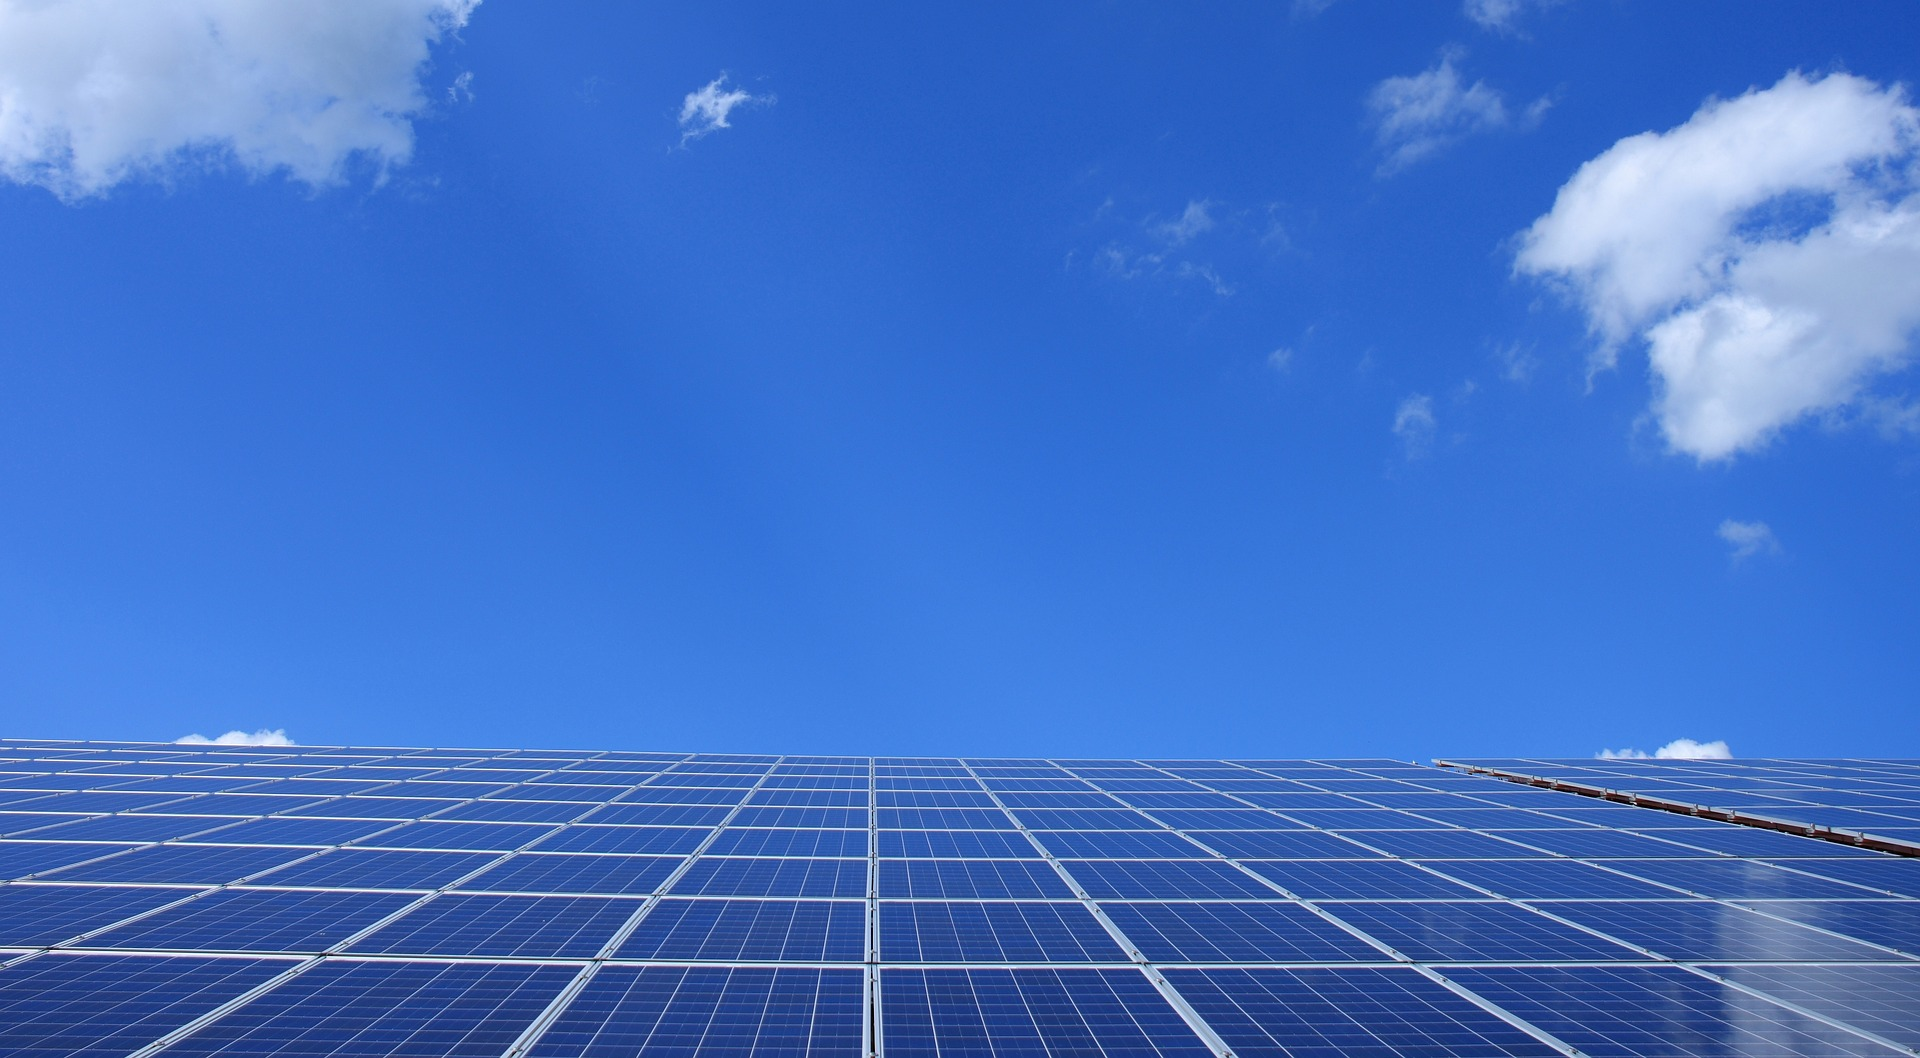 Solar panels and blue skies